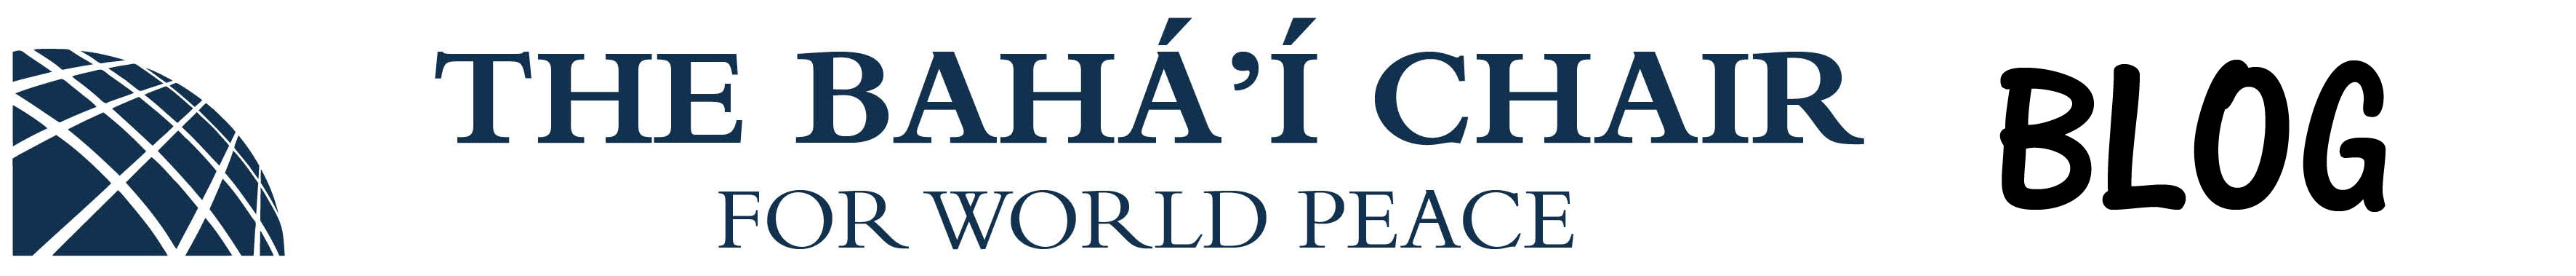 The Bahá'i Chair for World Peace